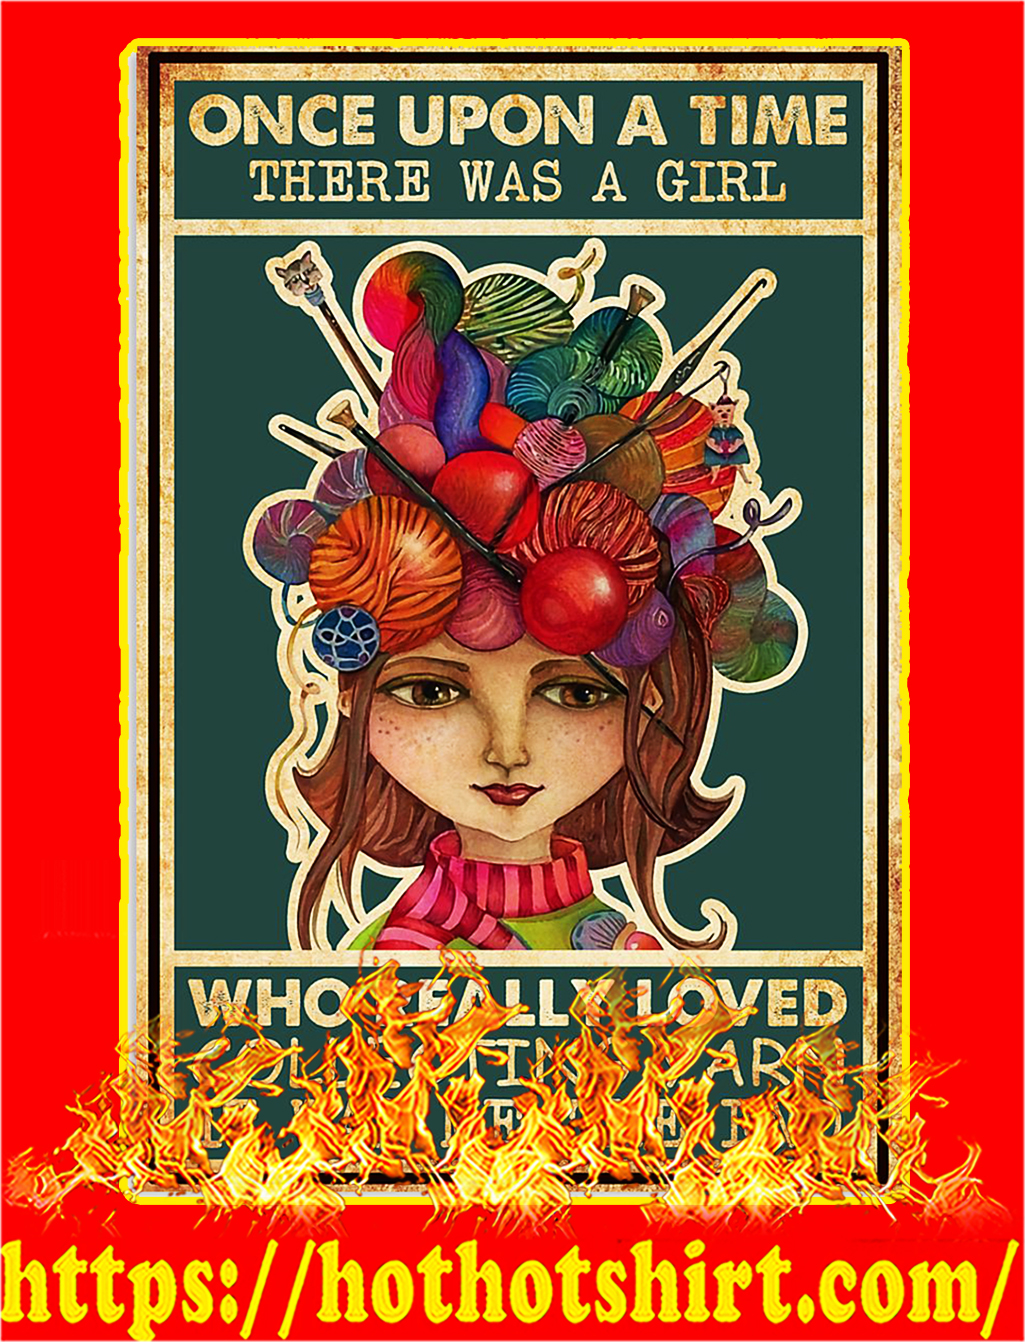 Once upon a time there was a girl who really loved collecting yarn poster - A3